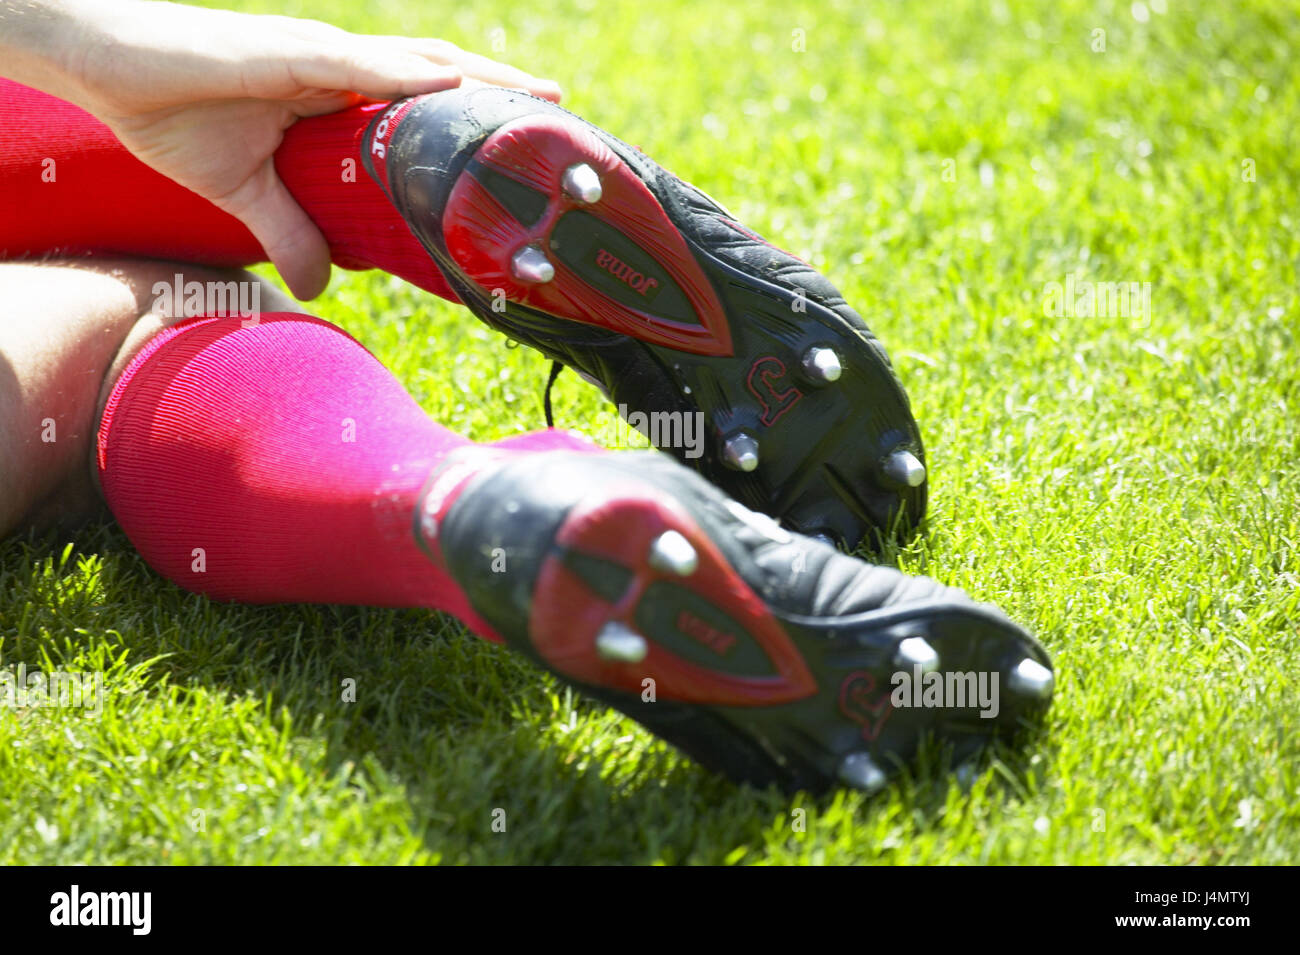 Turfs, football players, detail, bones, pains, touch football match, man, player, lie, pain, injury, foul, sports - Stock Image